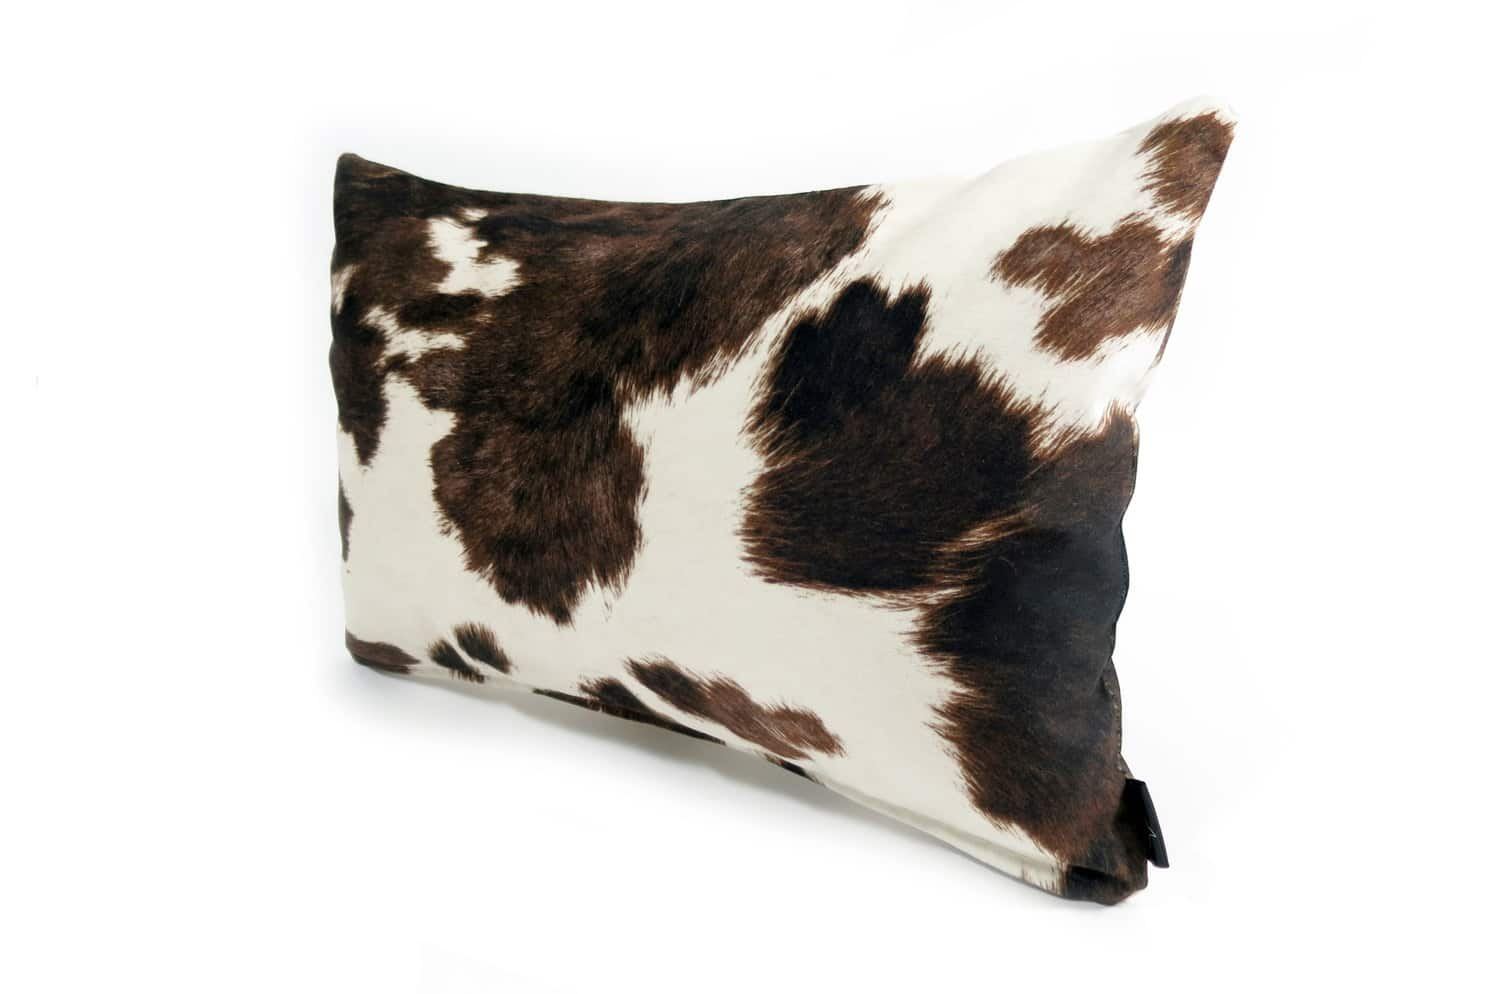 ad-cow-brown4530